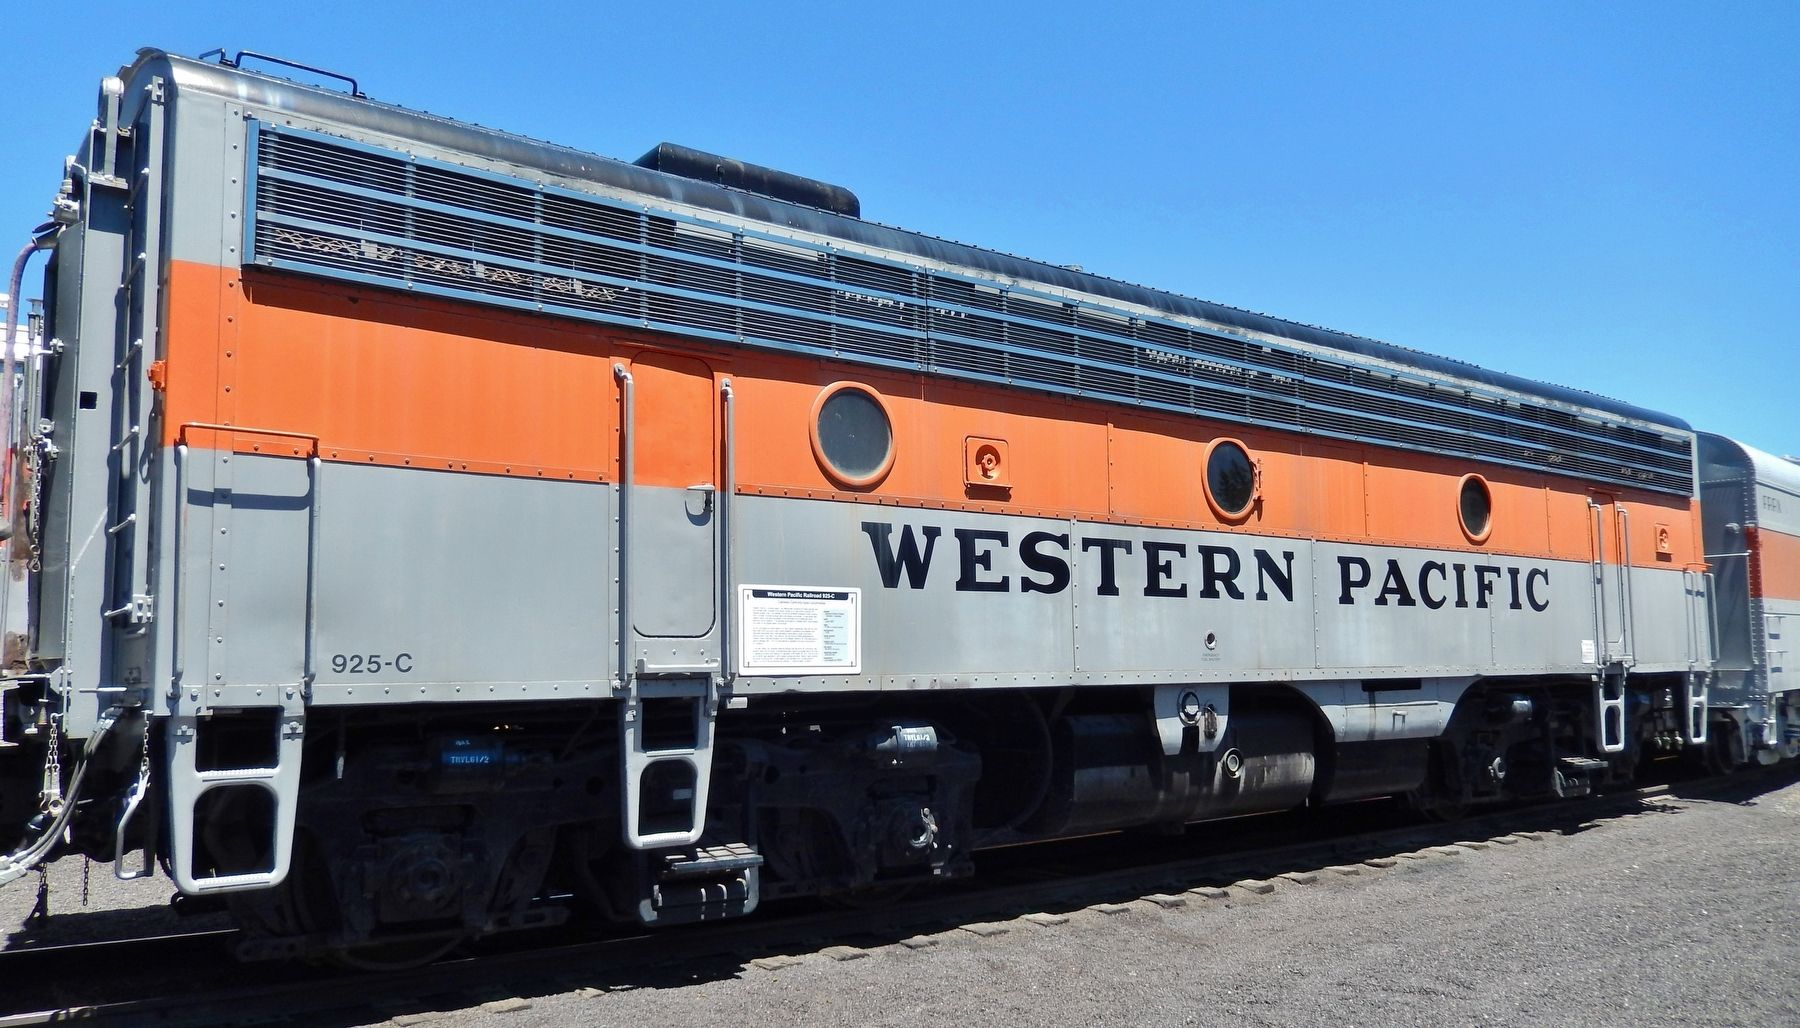 Western Pacific Railroad 925-C Marker image. Click for full size.